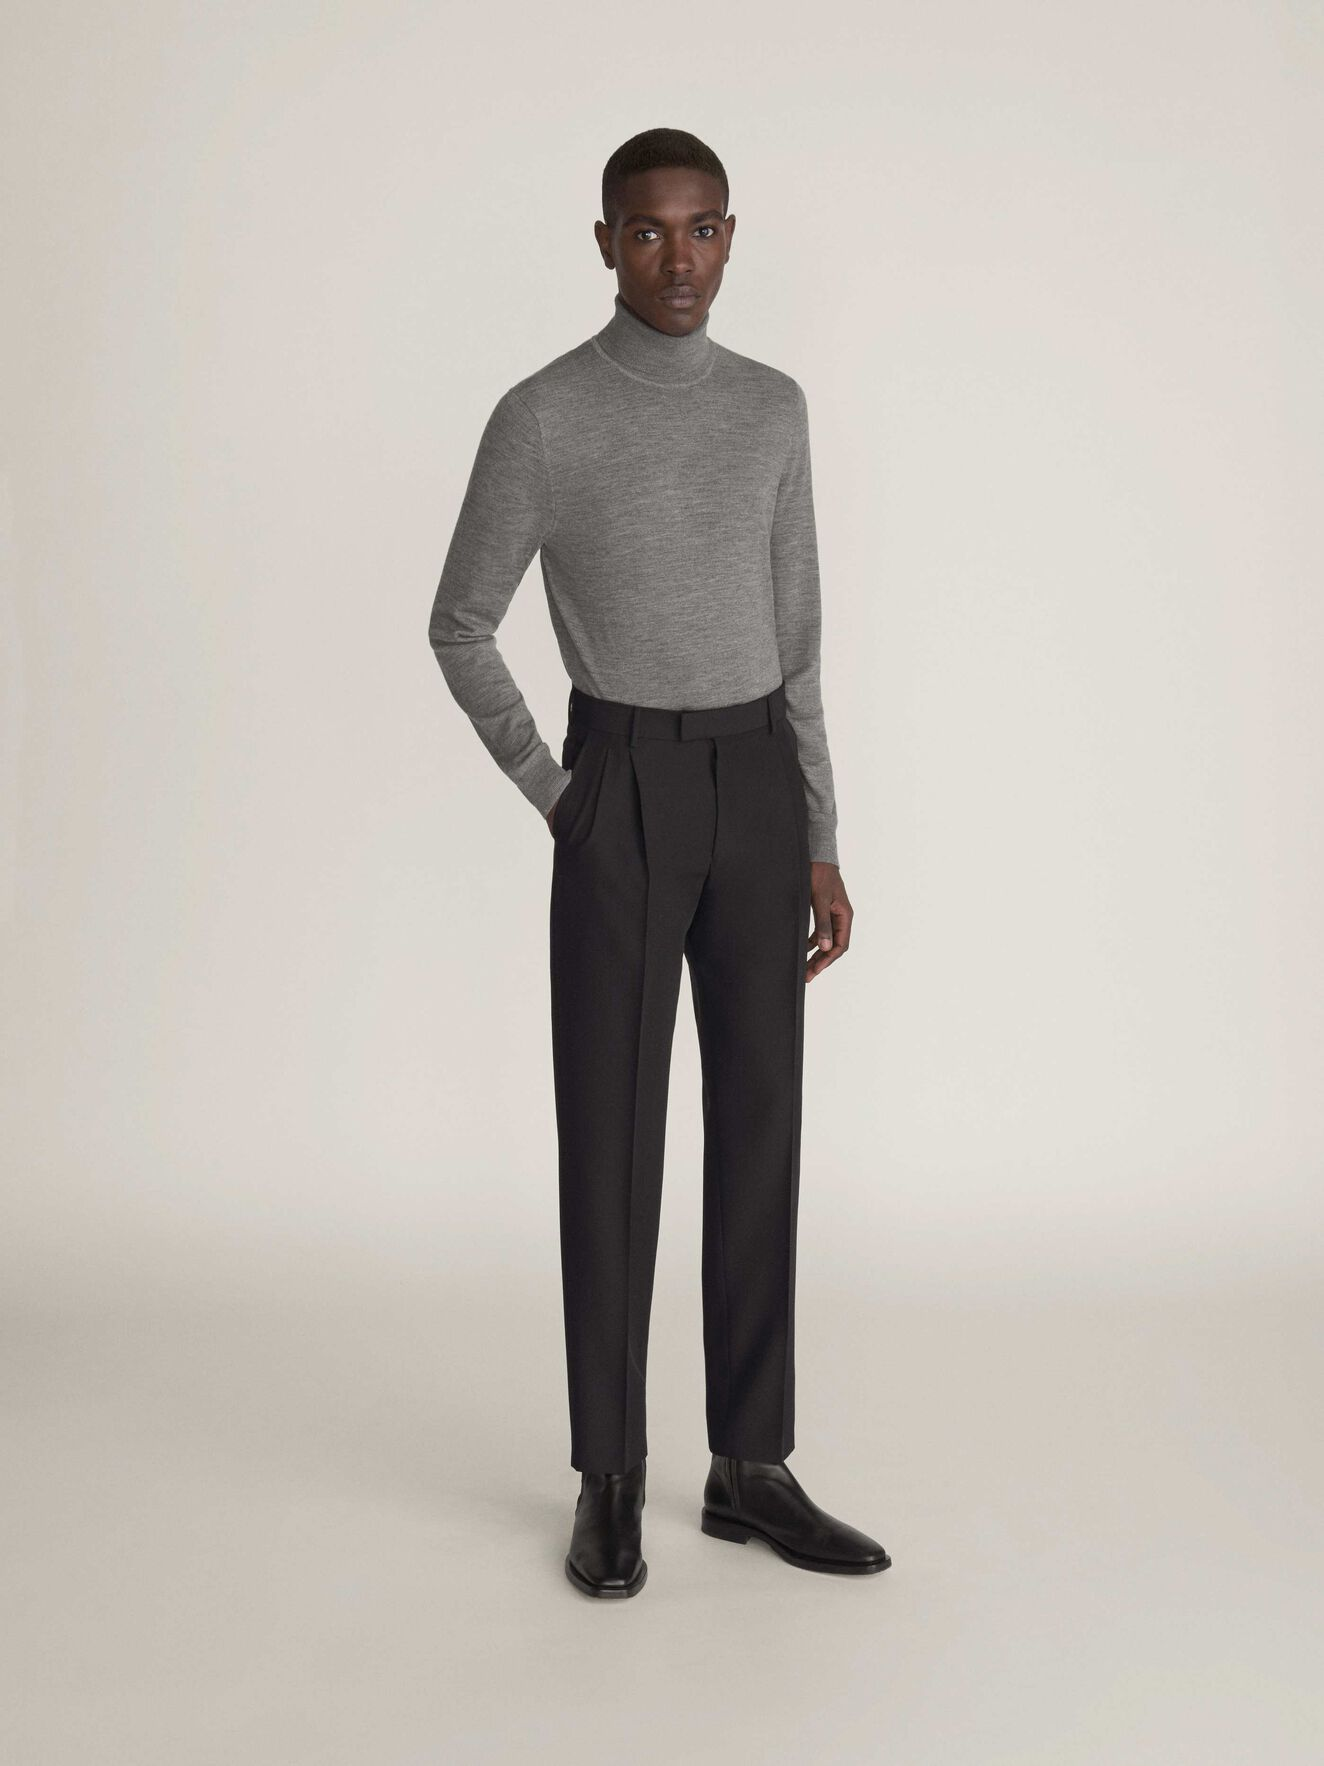 Trolosa Trousers in Black from Tiger of Sweden